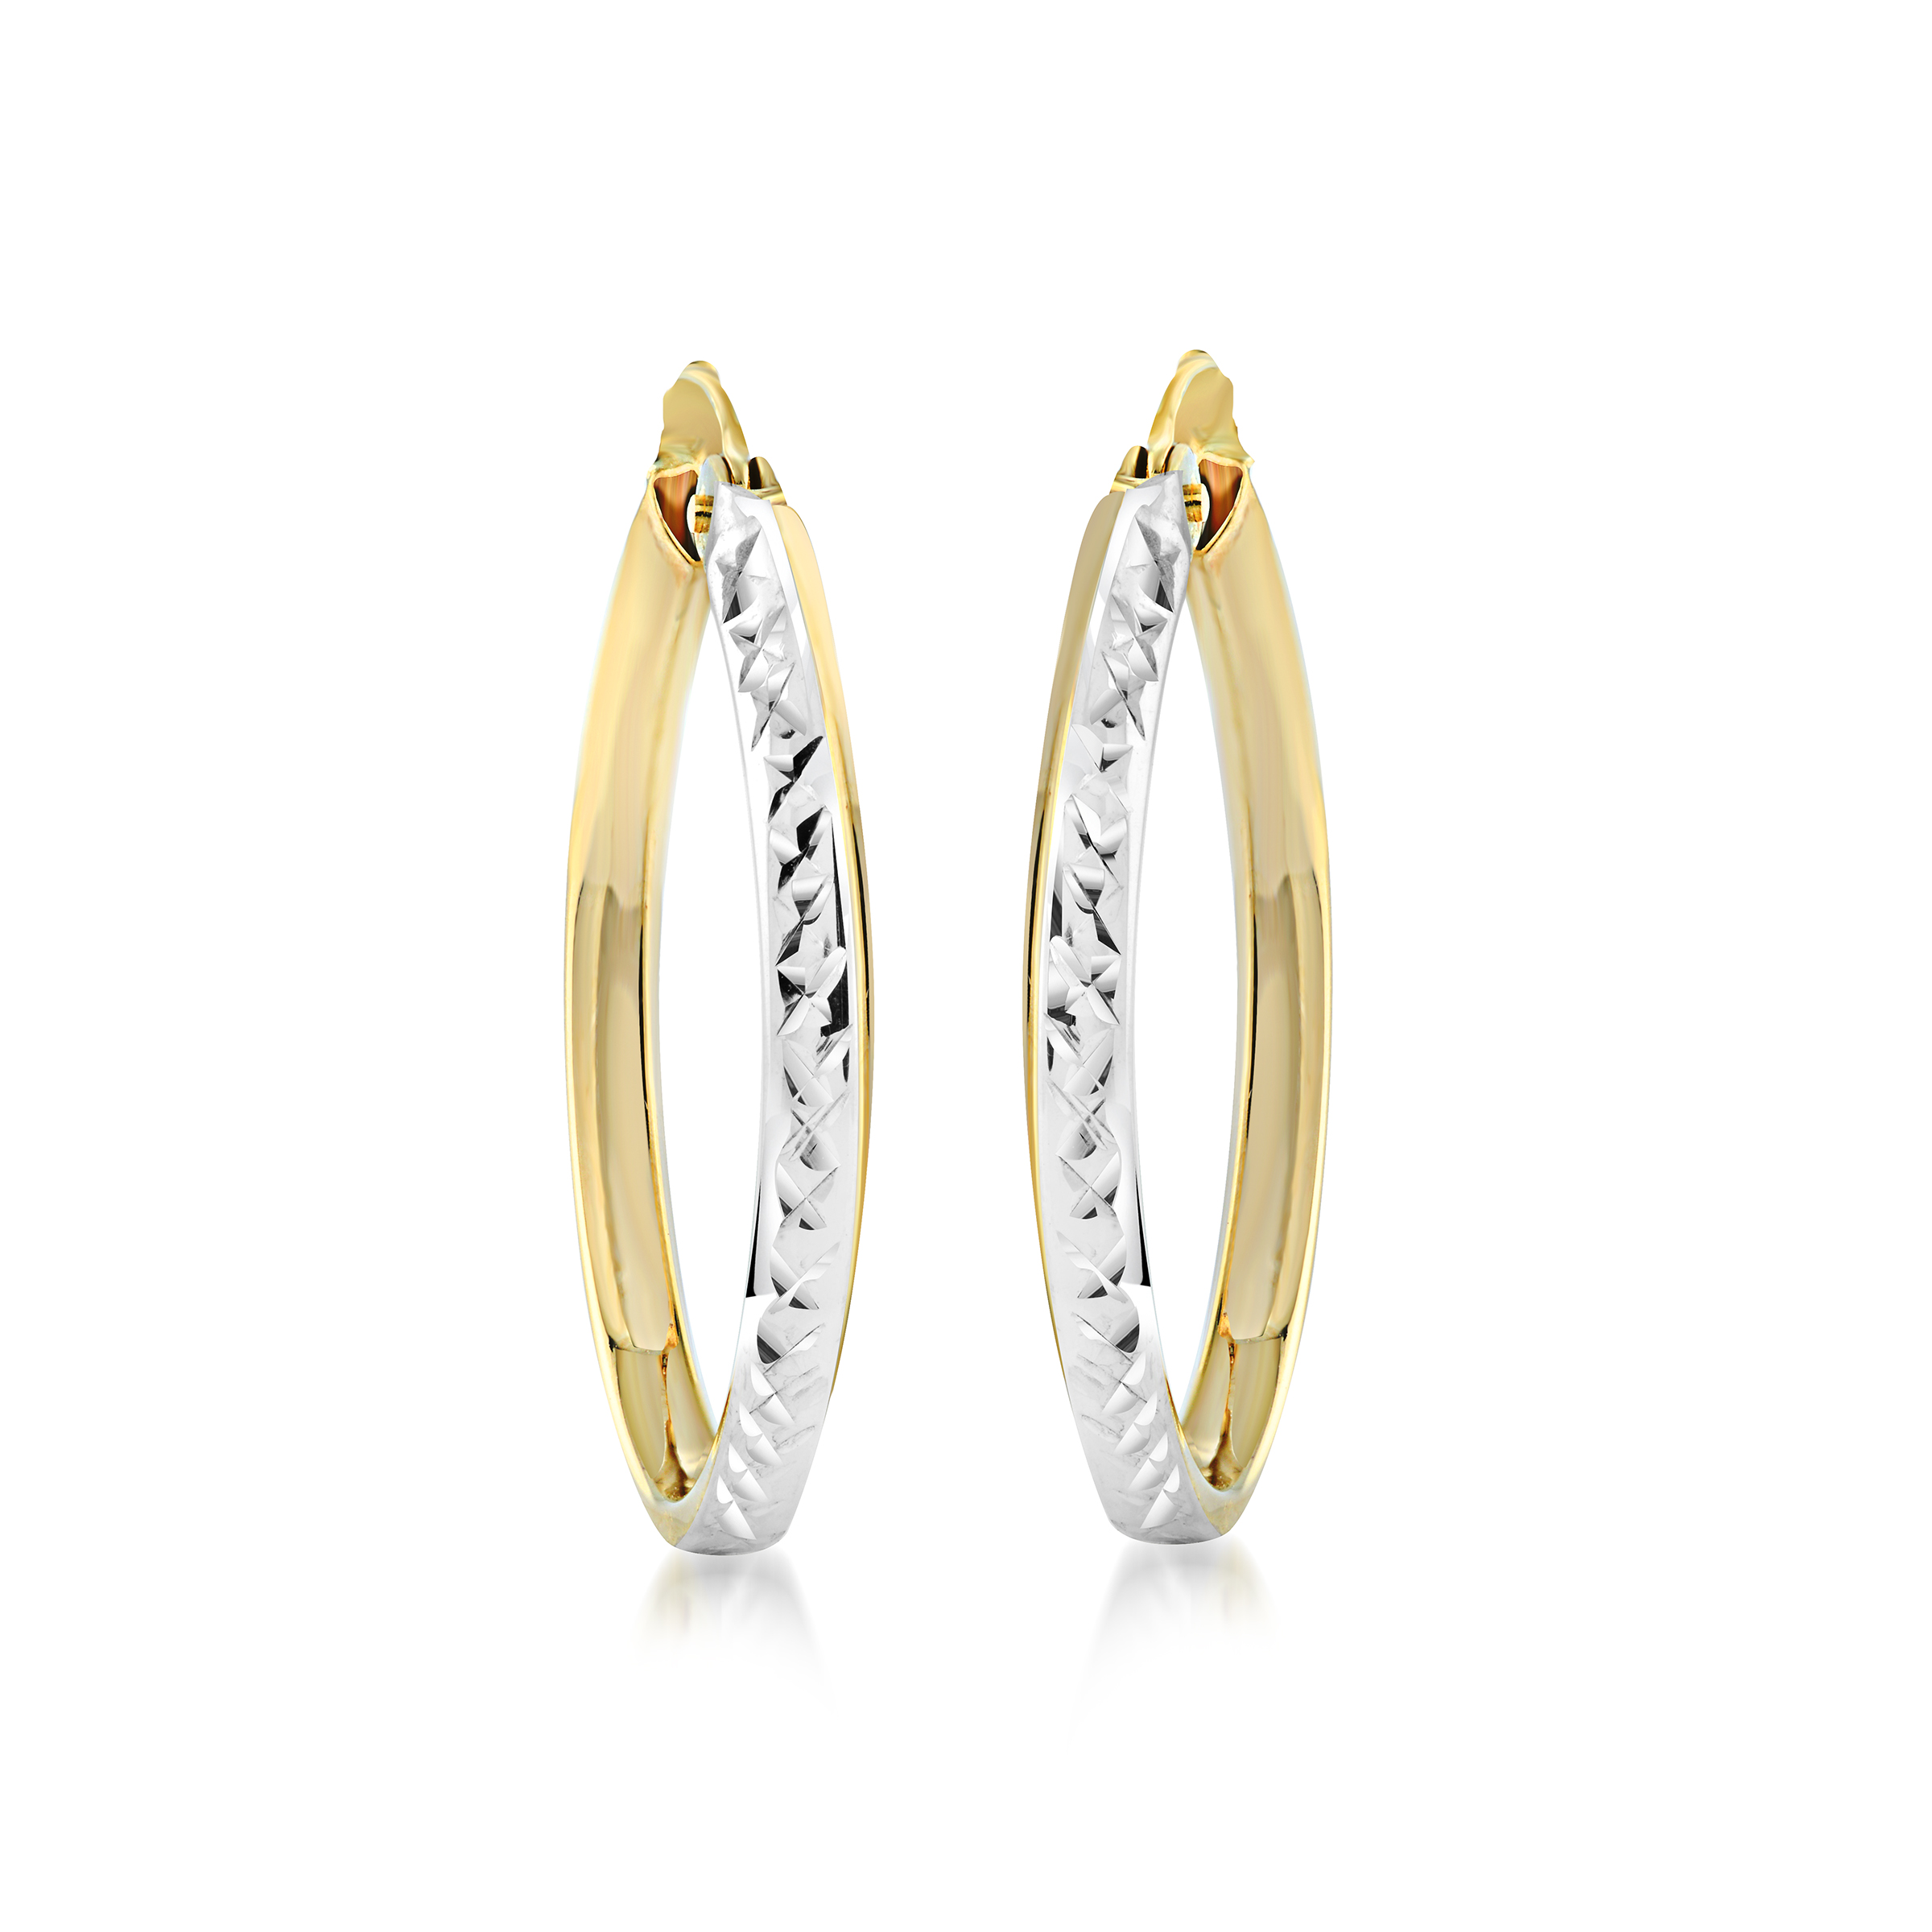 Oval hoop earrings for women - 10K 2-tone Gold